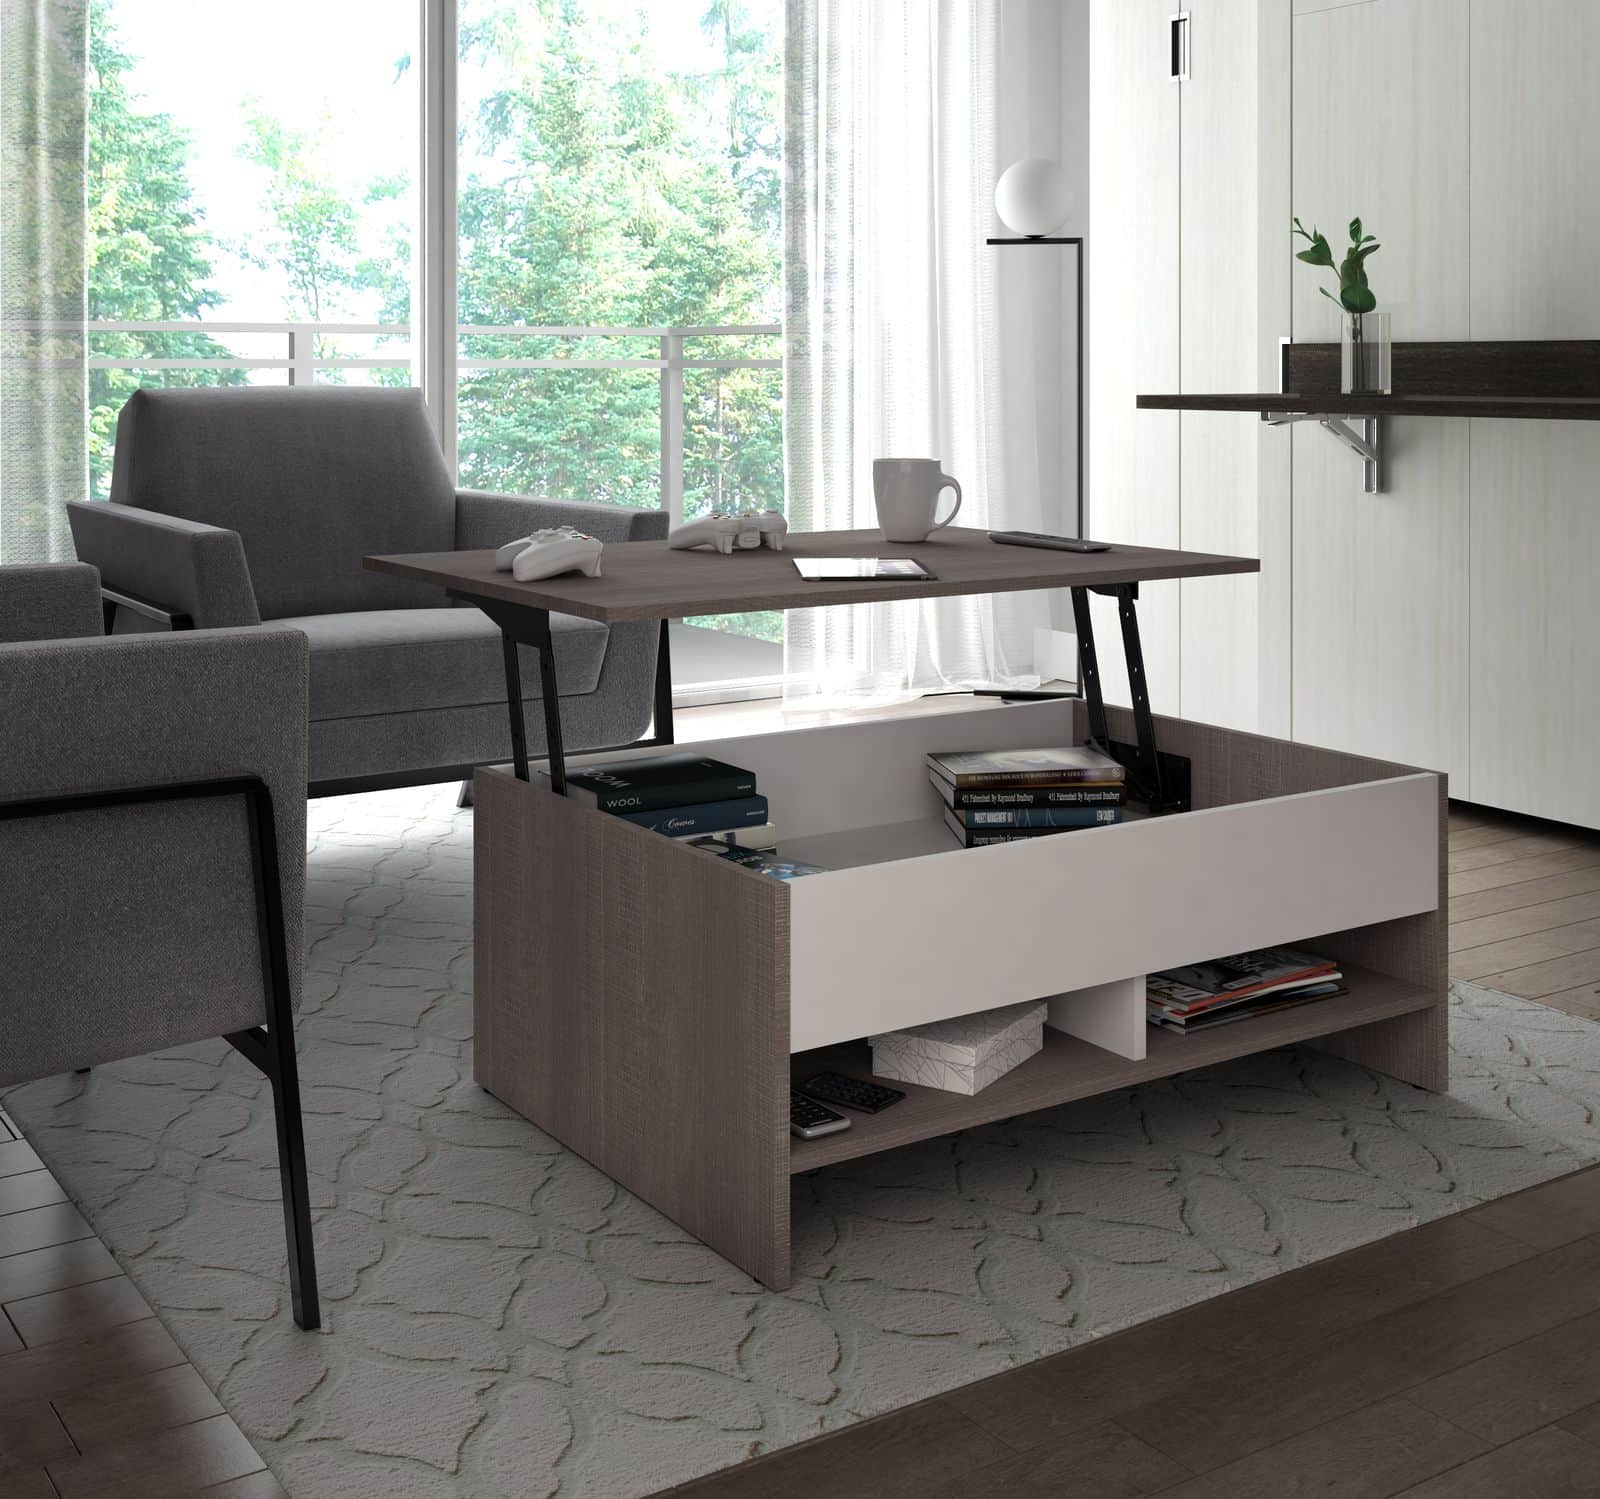 Bestar lift-top coffee table